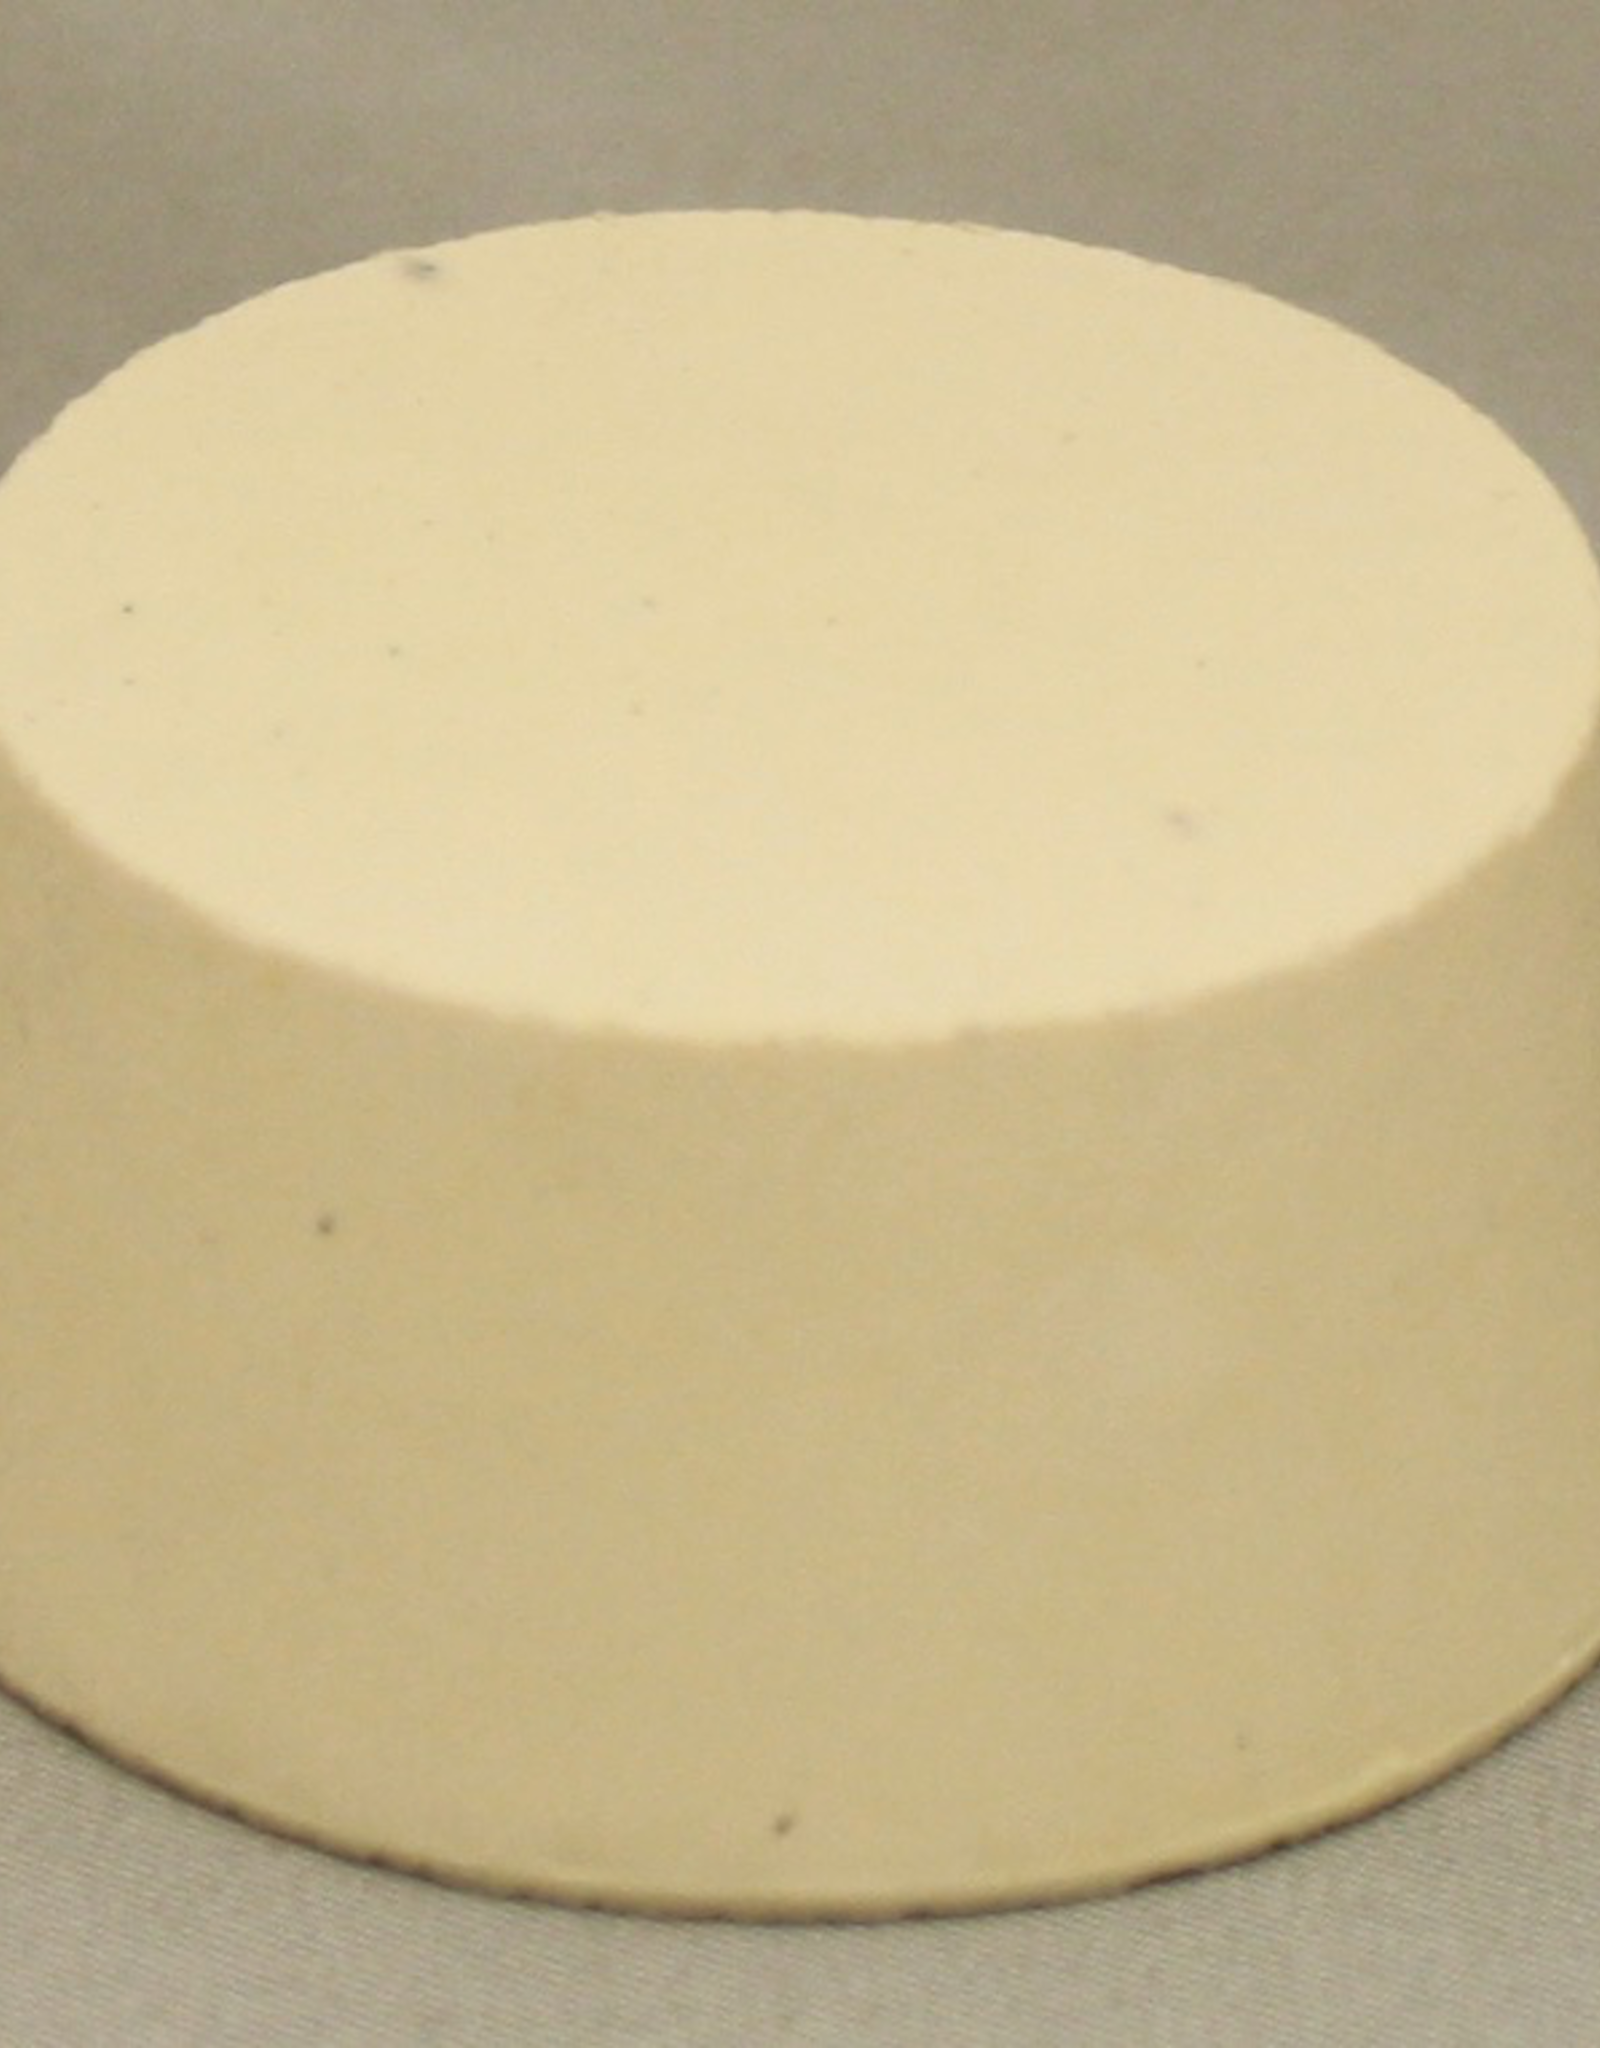 LD CARLSON #10.5 SOLID RUBBER STOPPER